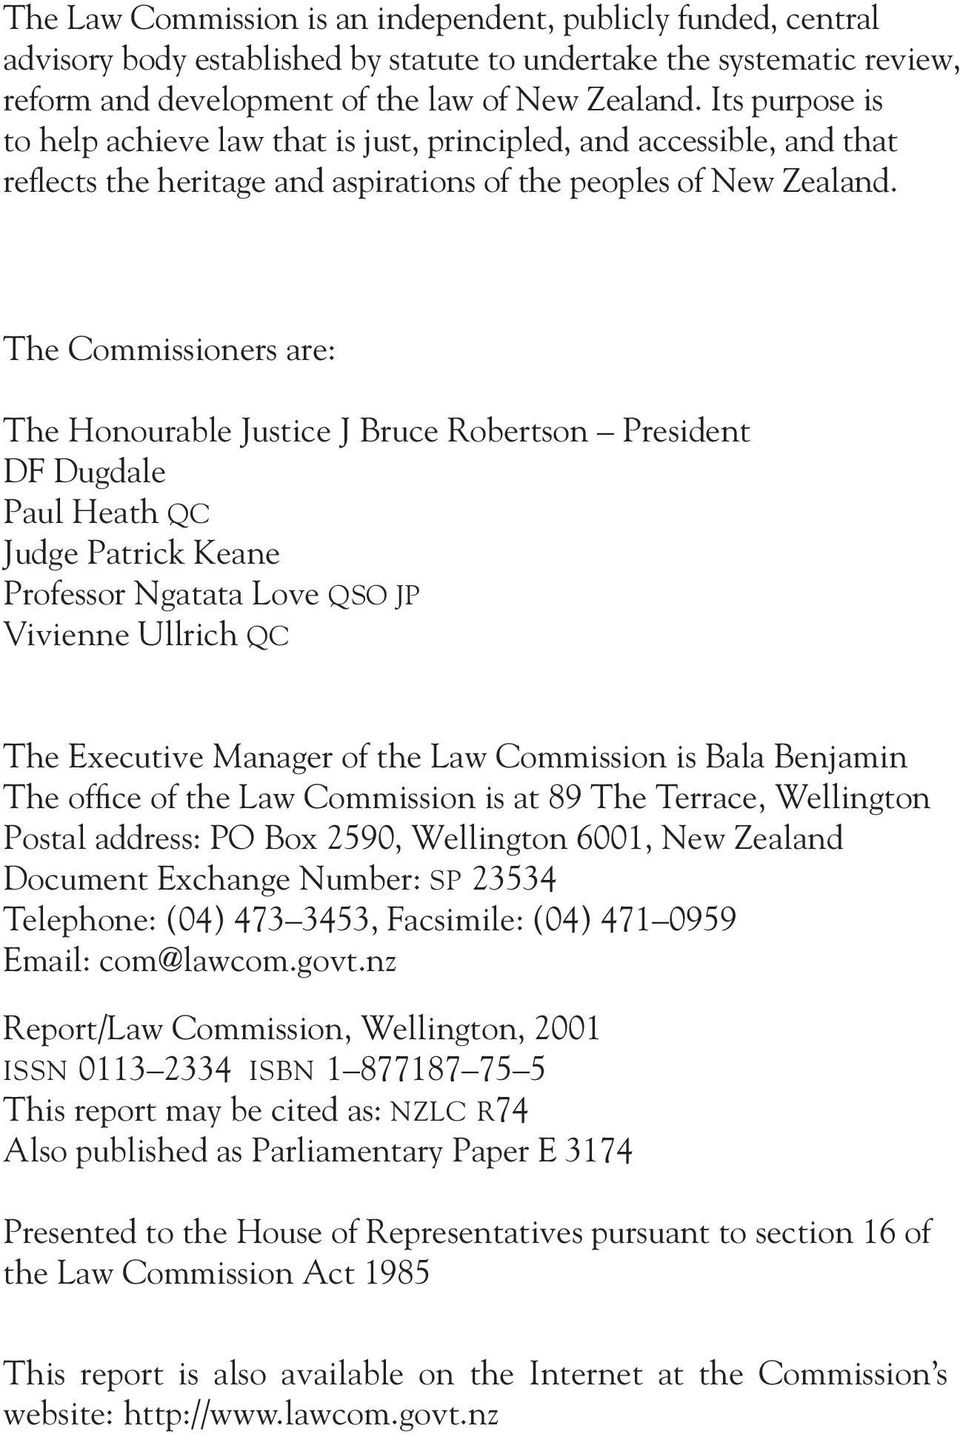 The Commissioners are: The Honourable Justice J Bruce Robertson President DF Dugdale Paul Heath QC Judge Patrick Keane Professor Ngatata Love QSO JP Vivienne Ullrich QC The Executive Manager of the